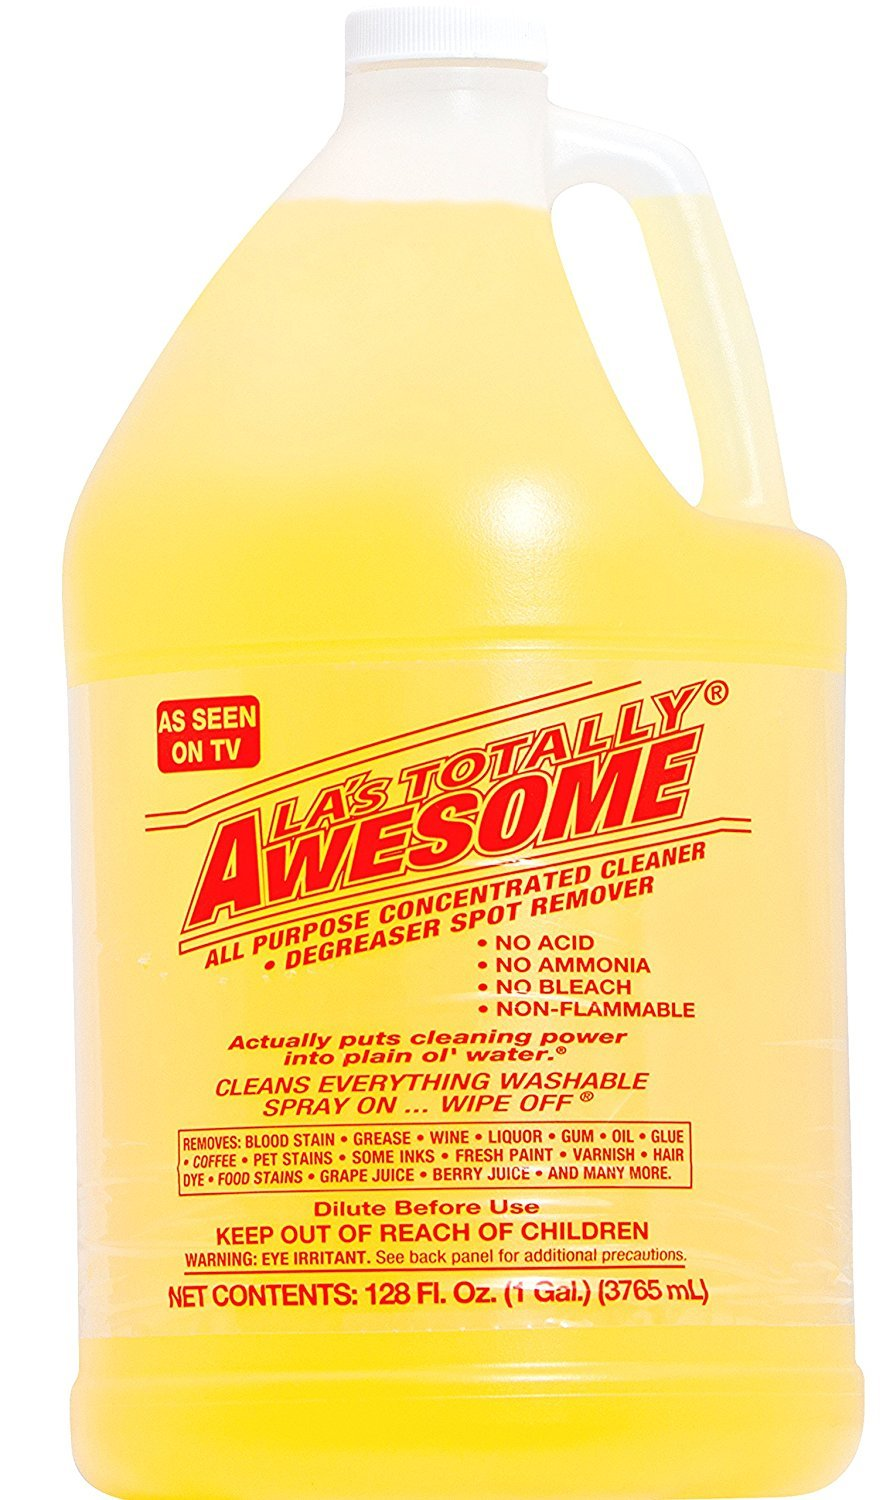 128oz Refills, 1 bottle Original - La's Totally Awesome All Purpose Concentrated Cleaner Degreaser Spot Remover Cleans Everything Washable As Seen on Tv